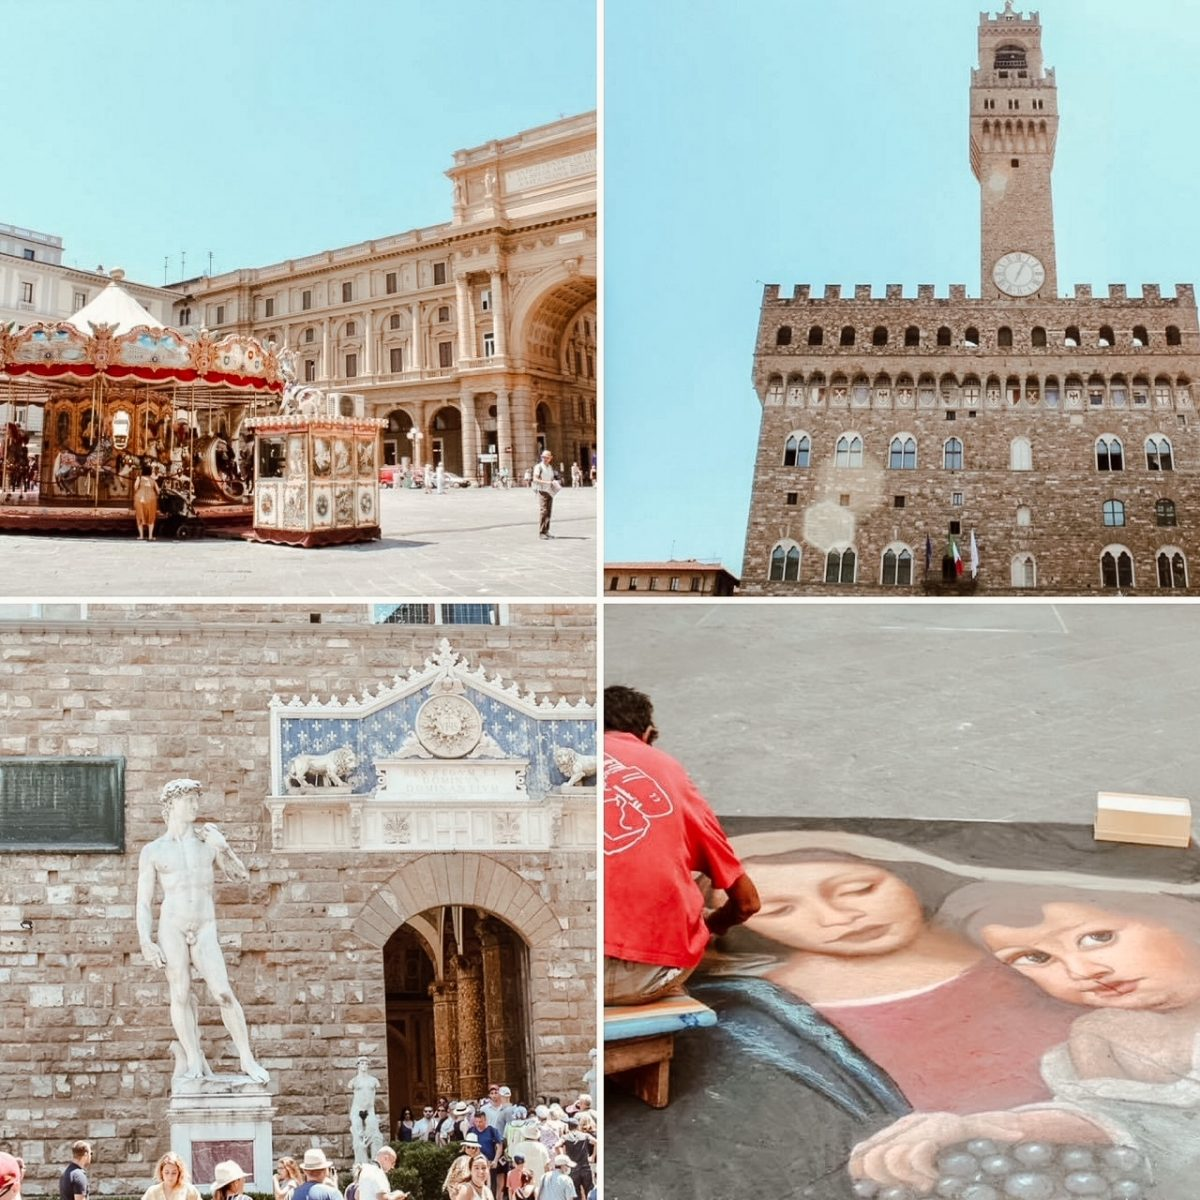 Sights of Florence, Italy